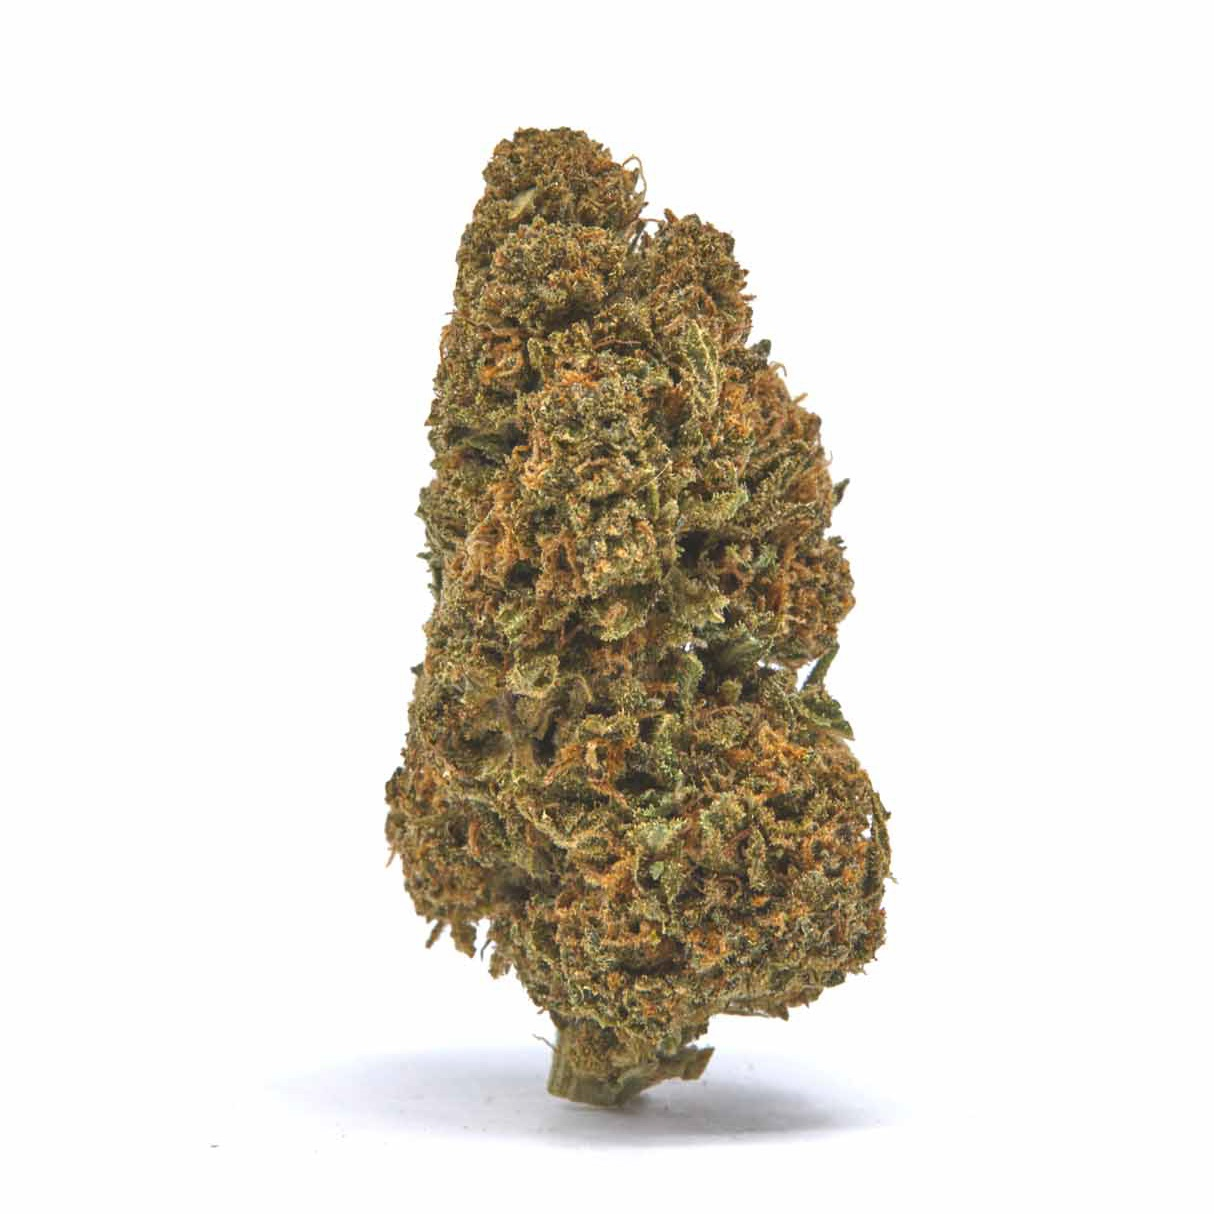 Spectrum 7 CBD Hemp Flower For Sale Online